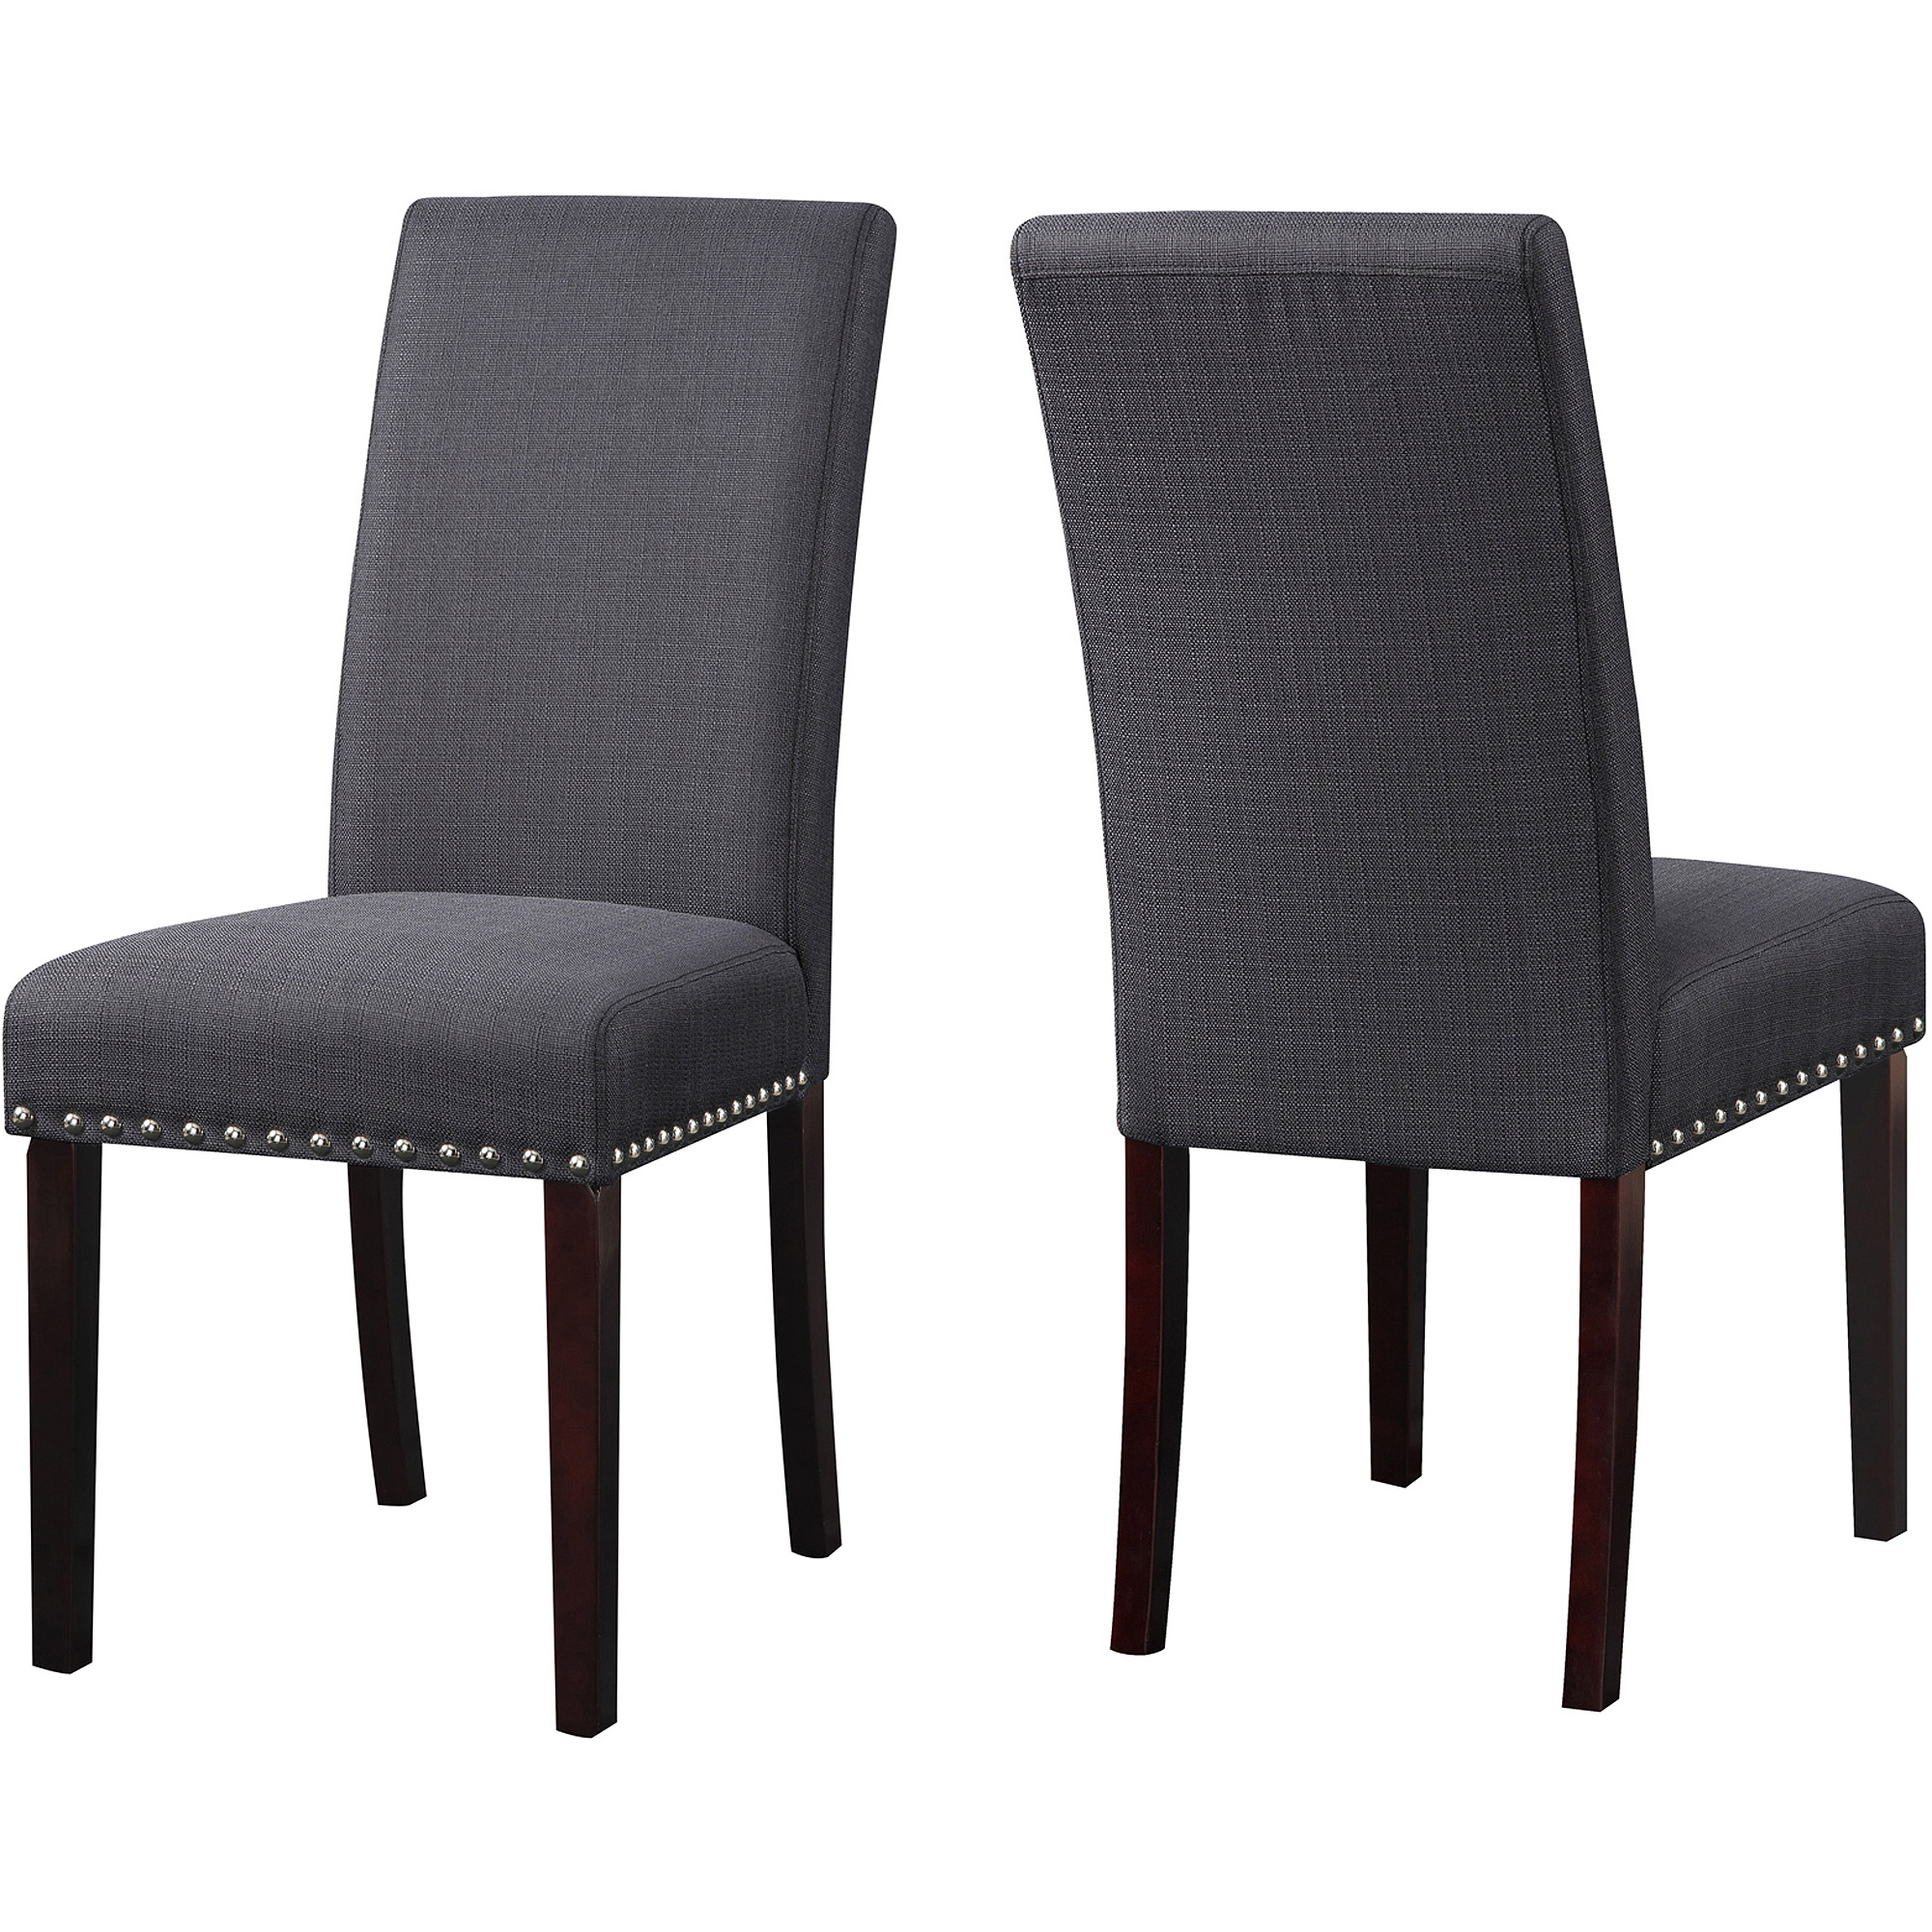 Uncategorized Modern Upholstered Dining Chairs dhi nice nail head upholstered dining chair 2 pack multiple colors walmart com